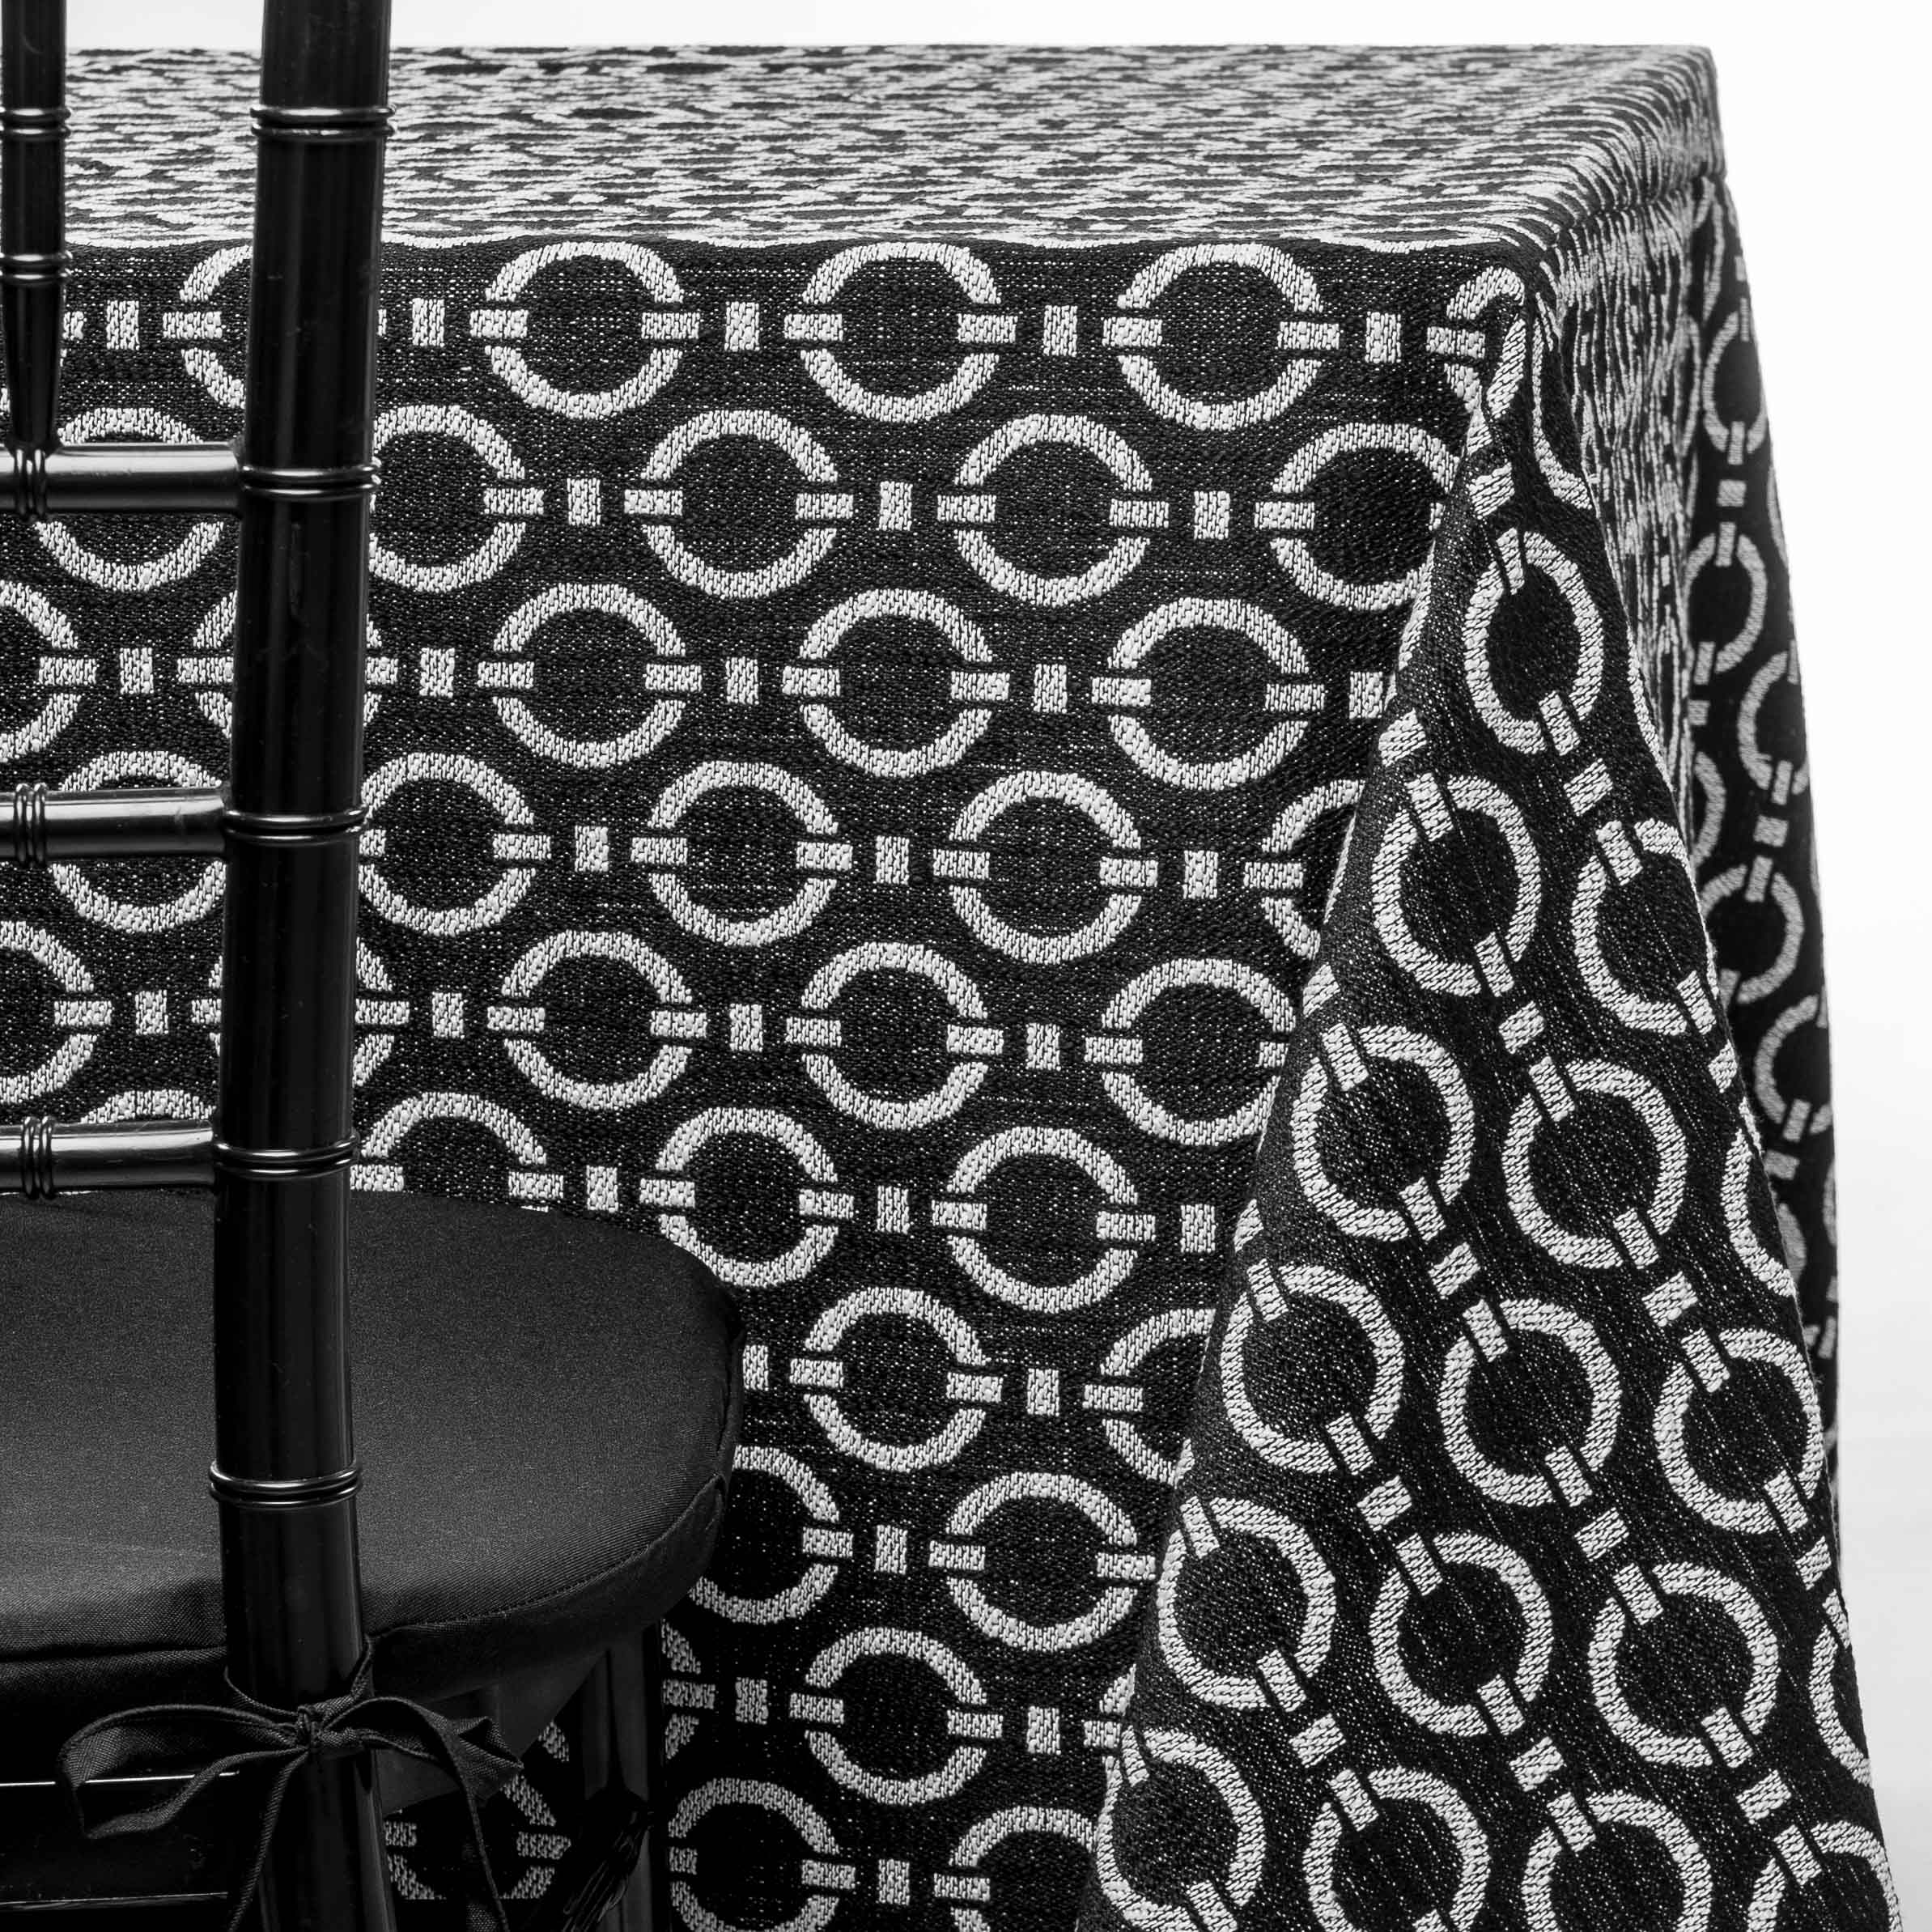 black and white links tablecloth rentals in New Jersey. For weddings or parties. Tablecloth and napkin rentals by Chaya Sara Thau